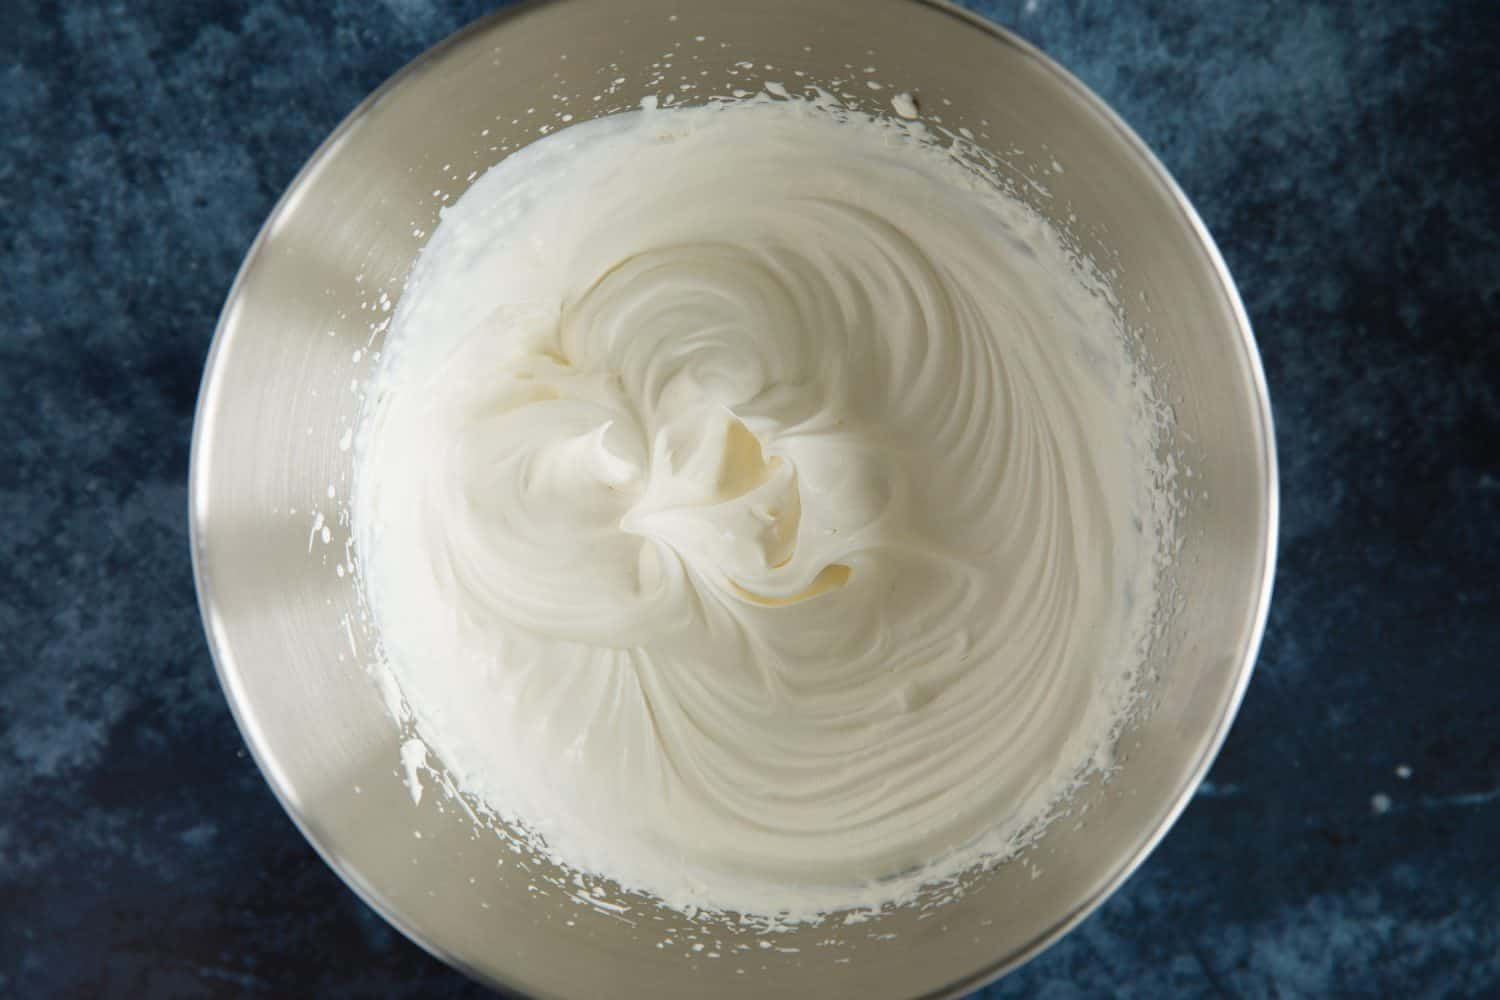 A silver mixing bowl containing whipped double cream.